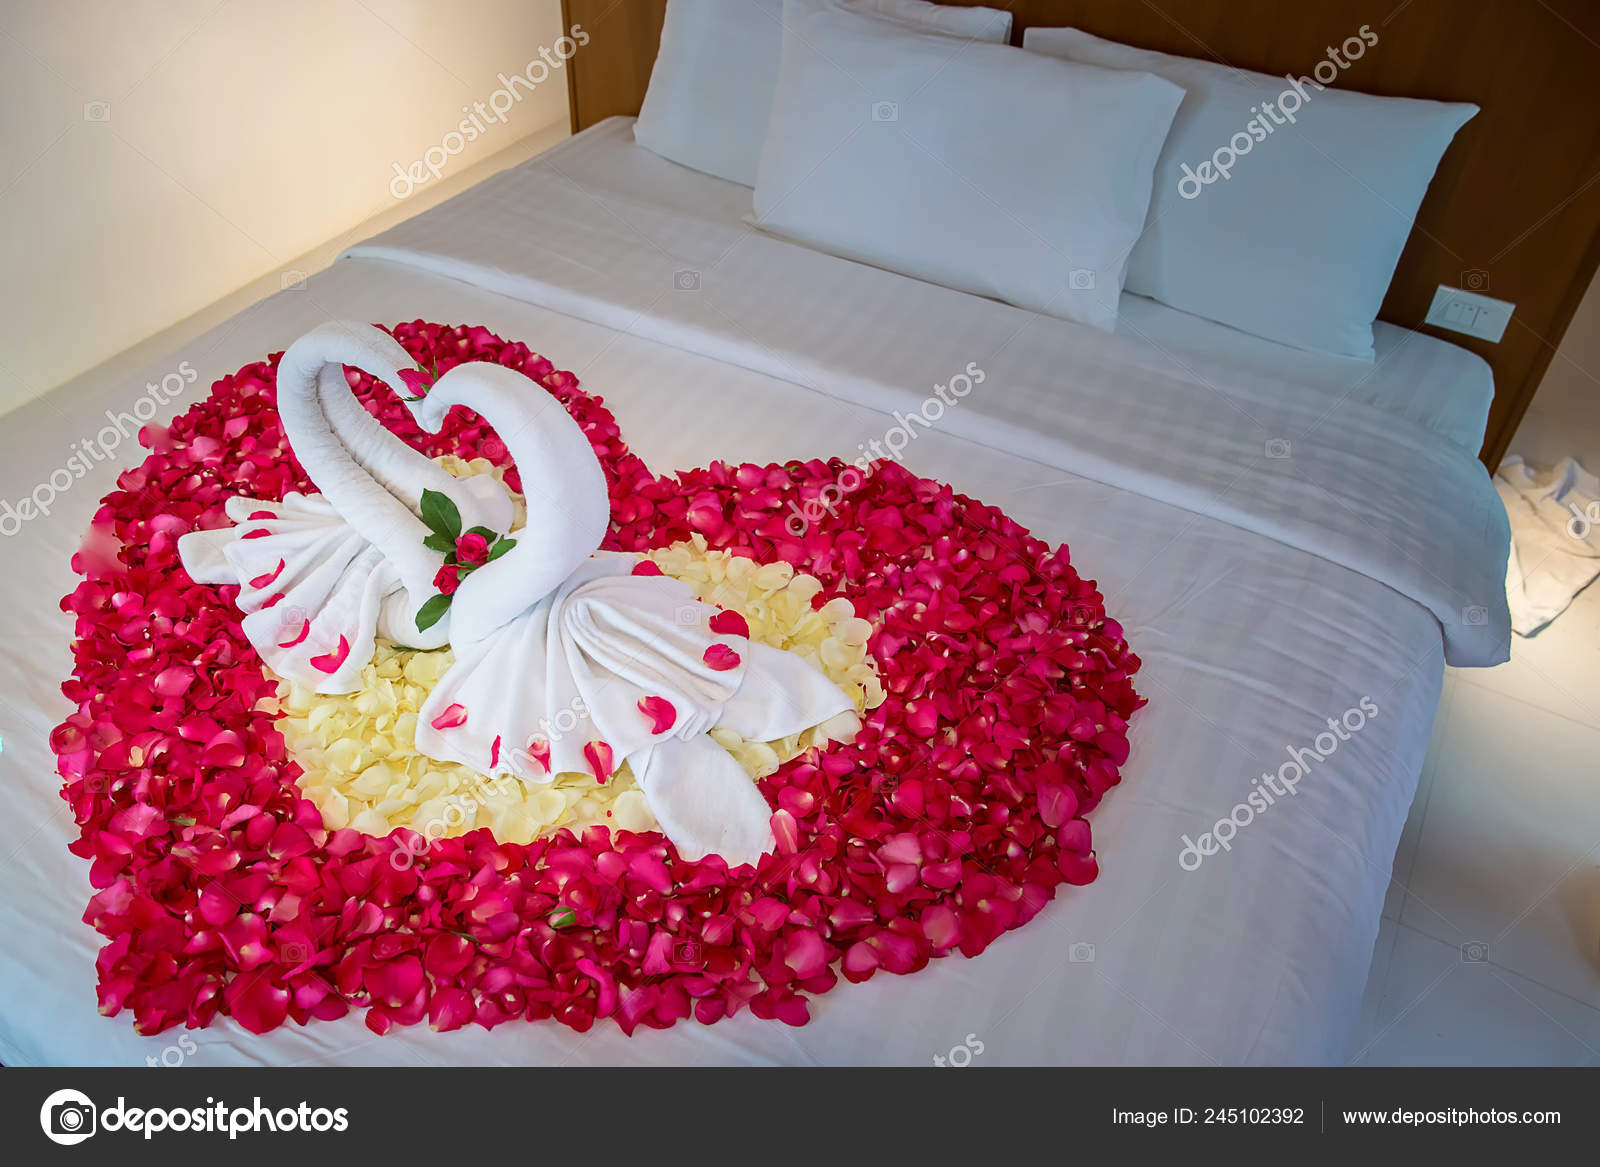 two swans made towels kissing honeymoon white bed creamy pillow stock photo c kckate16 gmail com 245102392